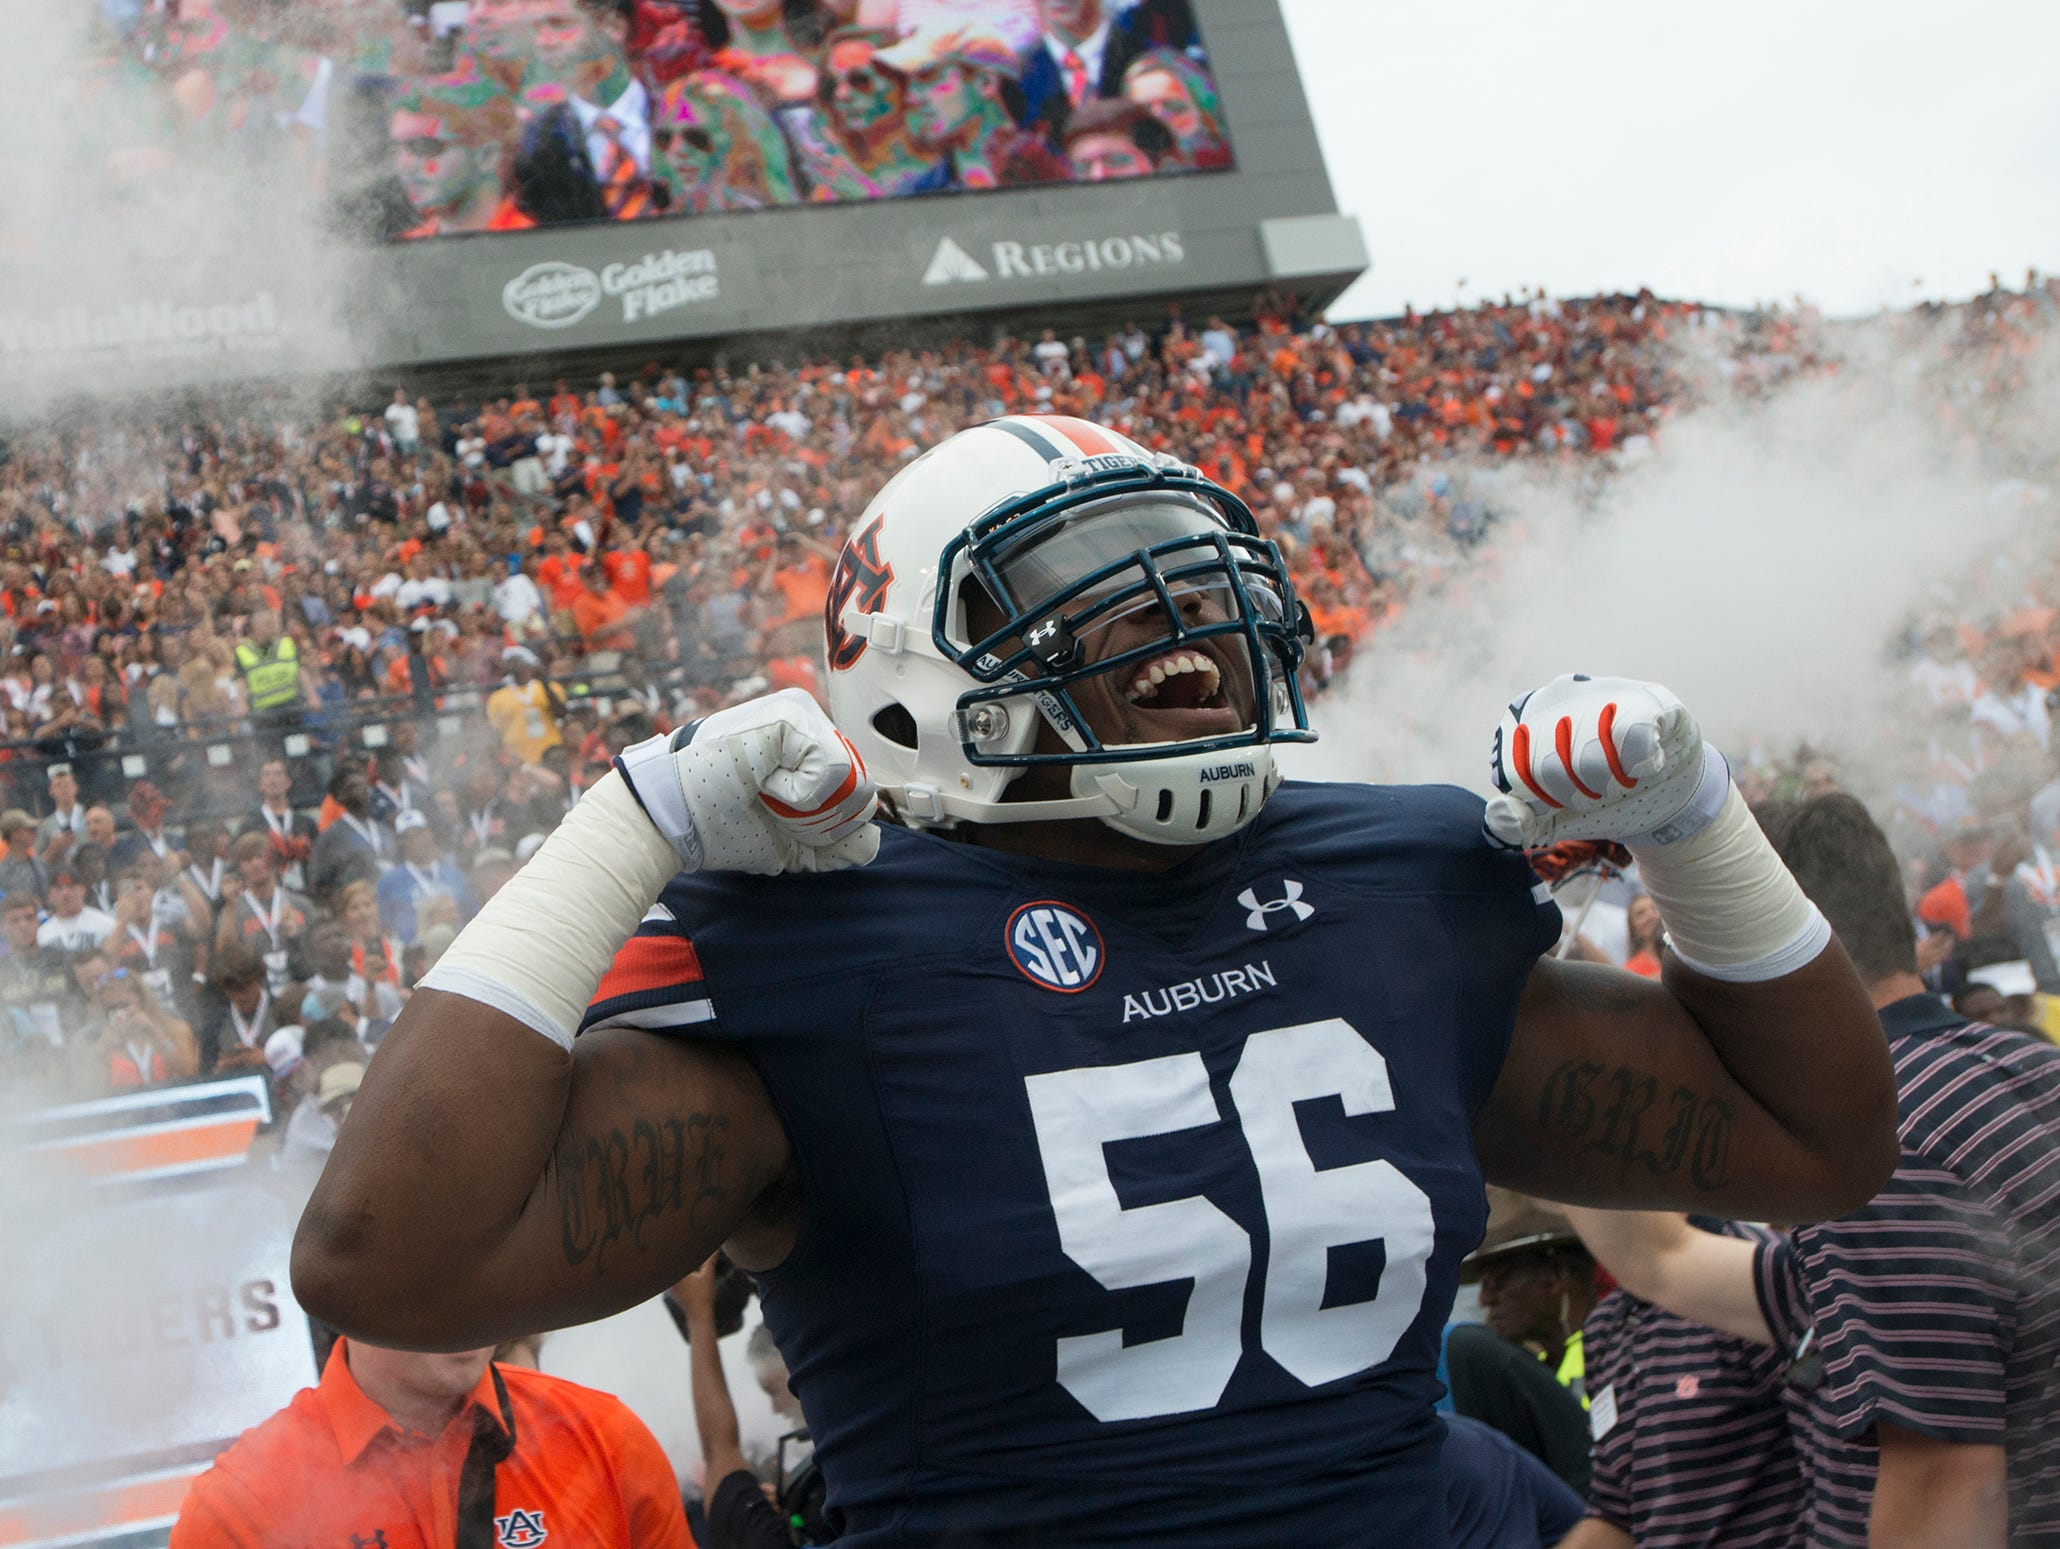 Auburn Tigers offensive lineman Avery Young (56) flexes during pre game of the NCAA Auburn vs. Jacksonville State on Saturday, Sept. 12, 2015, in at Jordan-Hare Stadium in Auburn, Ala. (AP Photo/Montgomery Advertiser/Albert Cesare) Albert Cesare / Advertiser